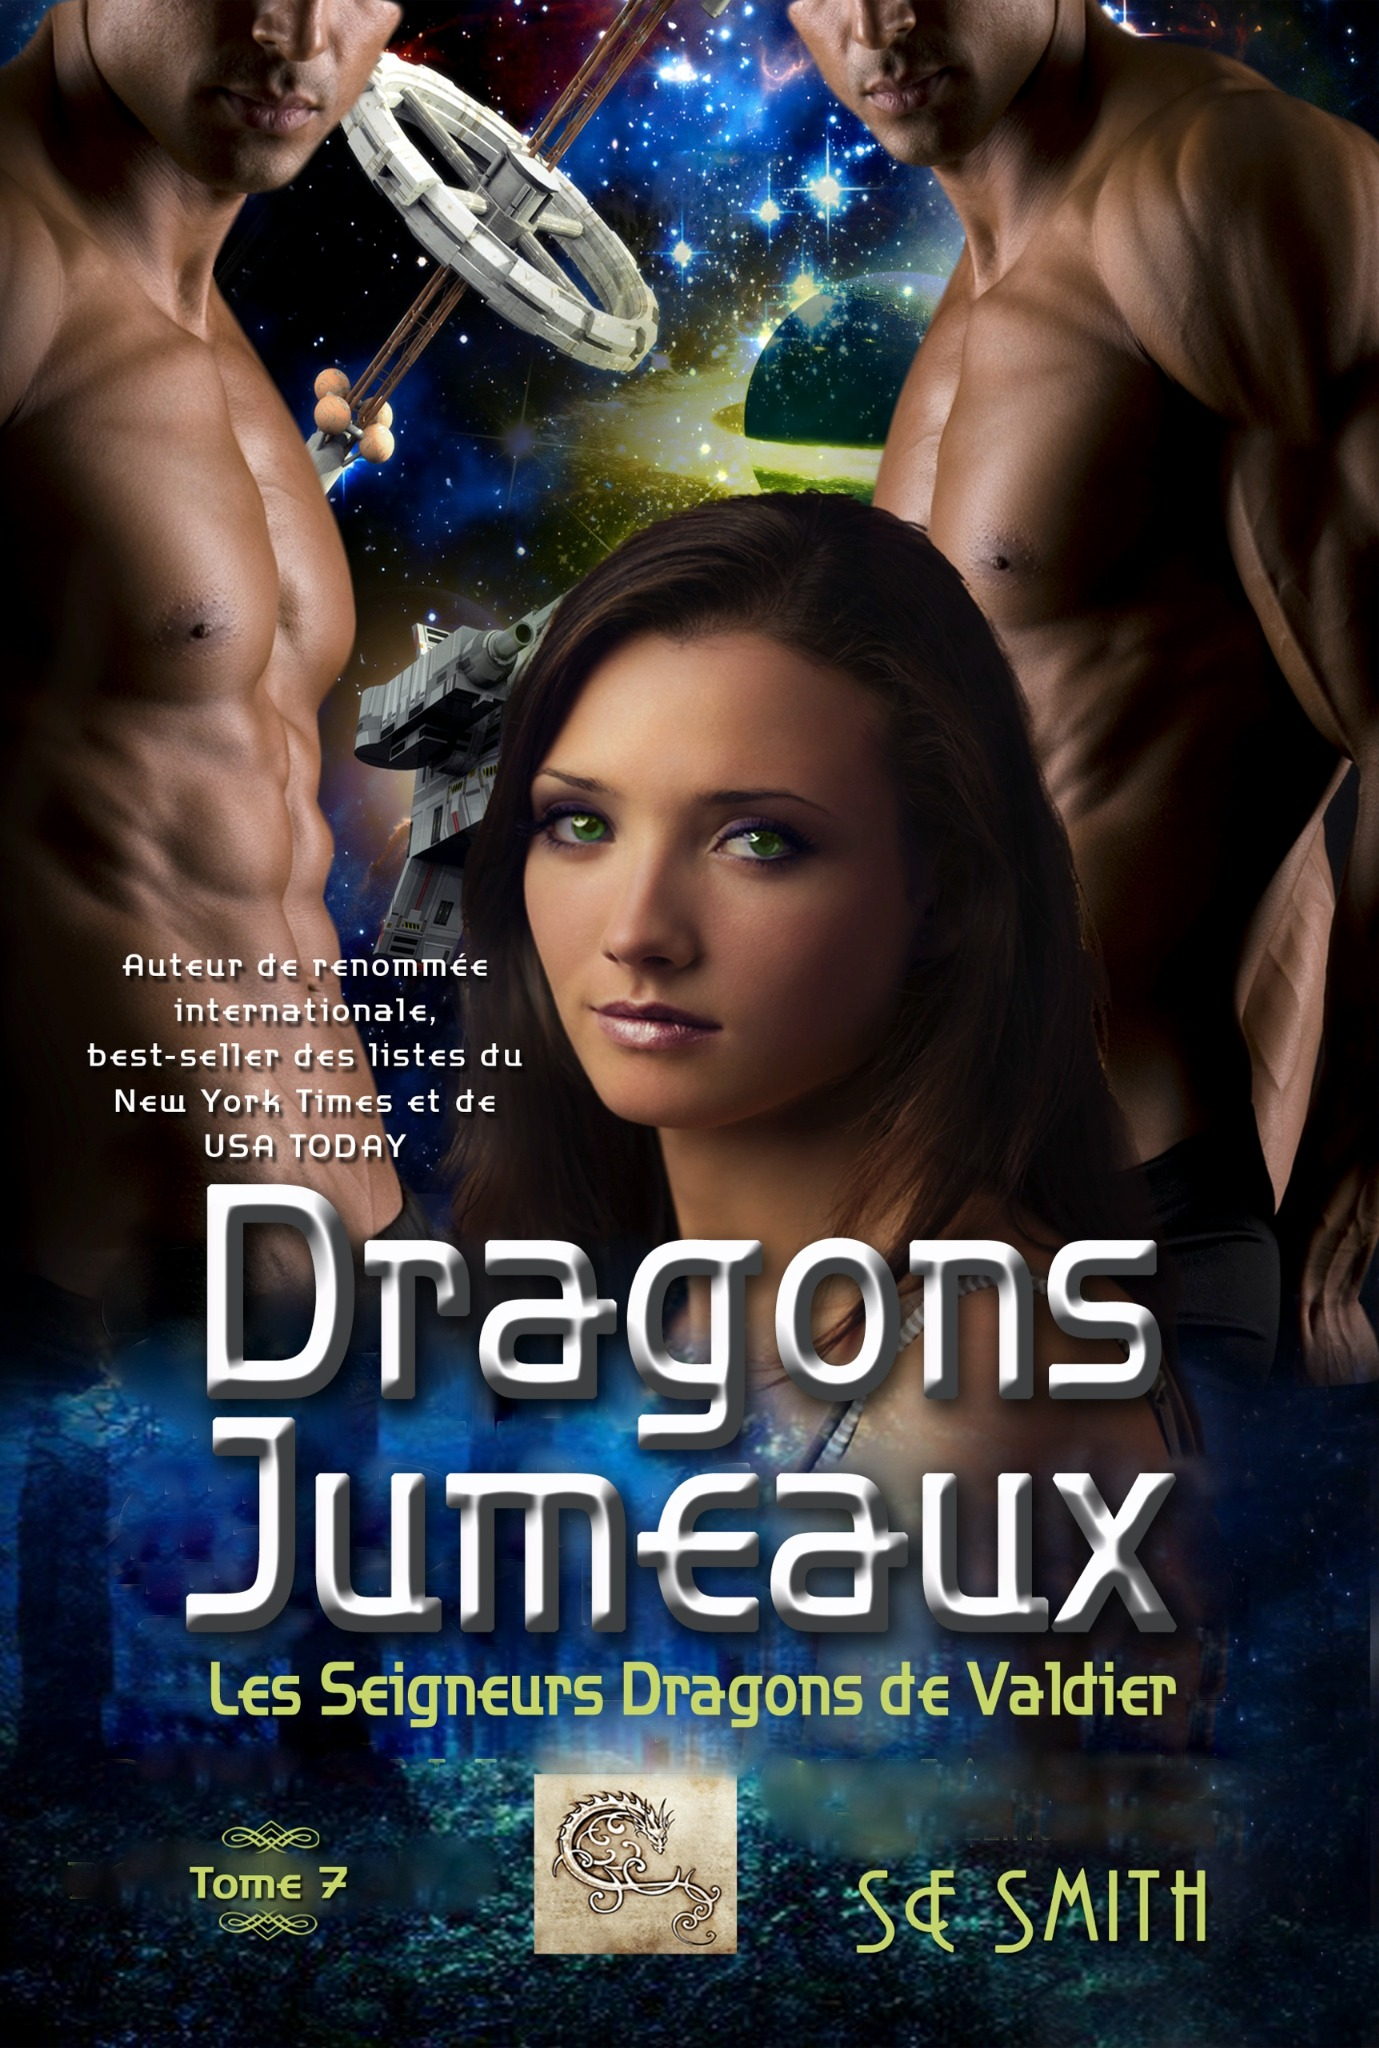 Dragons Jumeaux  Series:  Les Seigneurs Dragons de Valdier tome 7 (ebook: Kindle et epub)